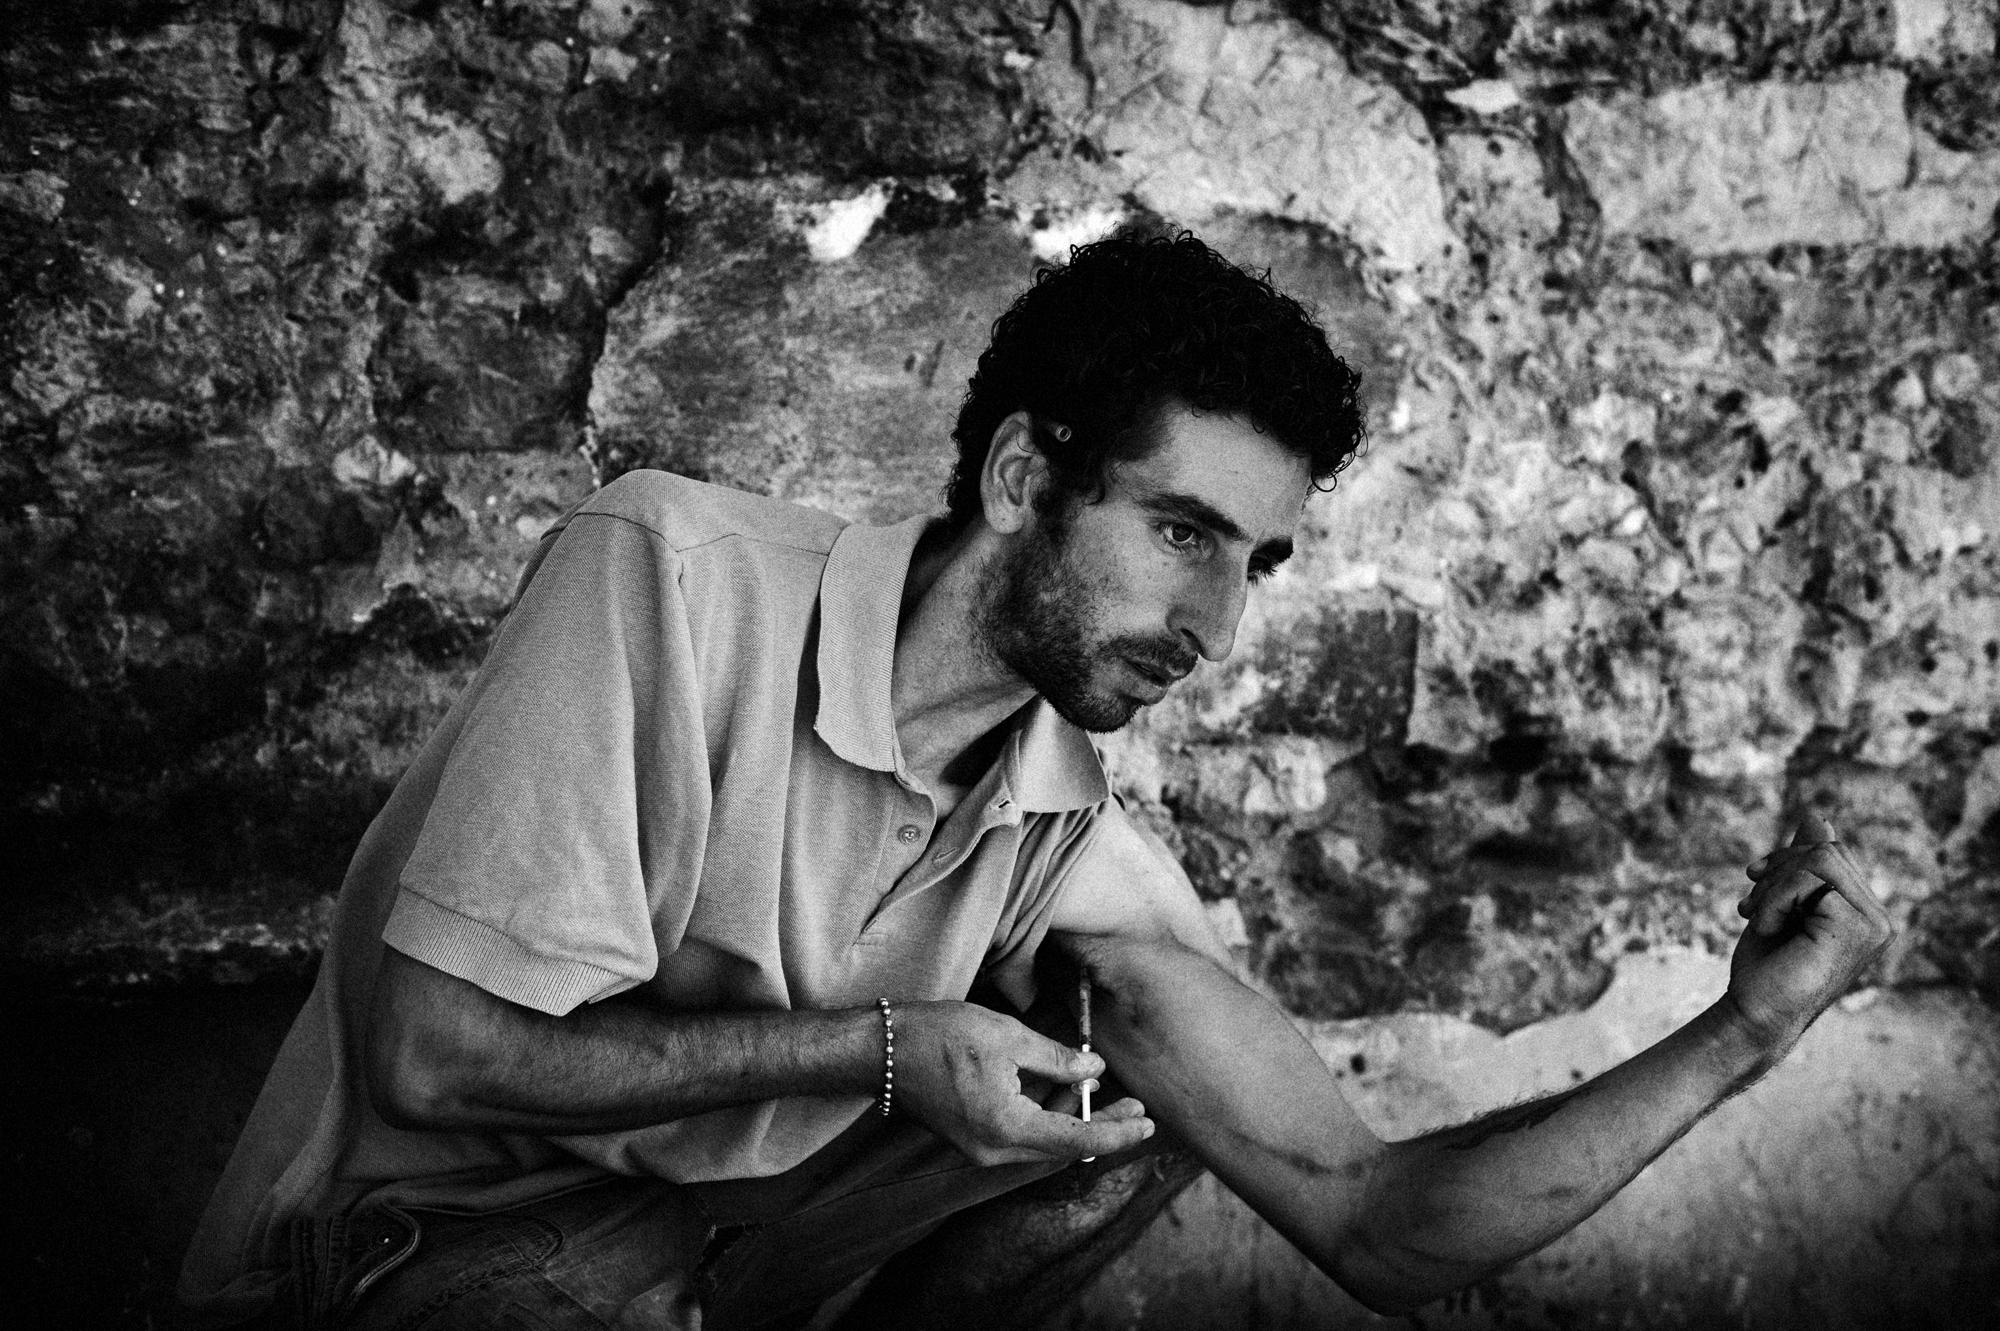 Casal Ventoso, Lisbon, Portugal. July 2011. Paolo, a heroin addict shooting heroin at Casal Ventoso. He is also on a methadone program.